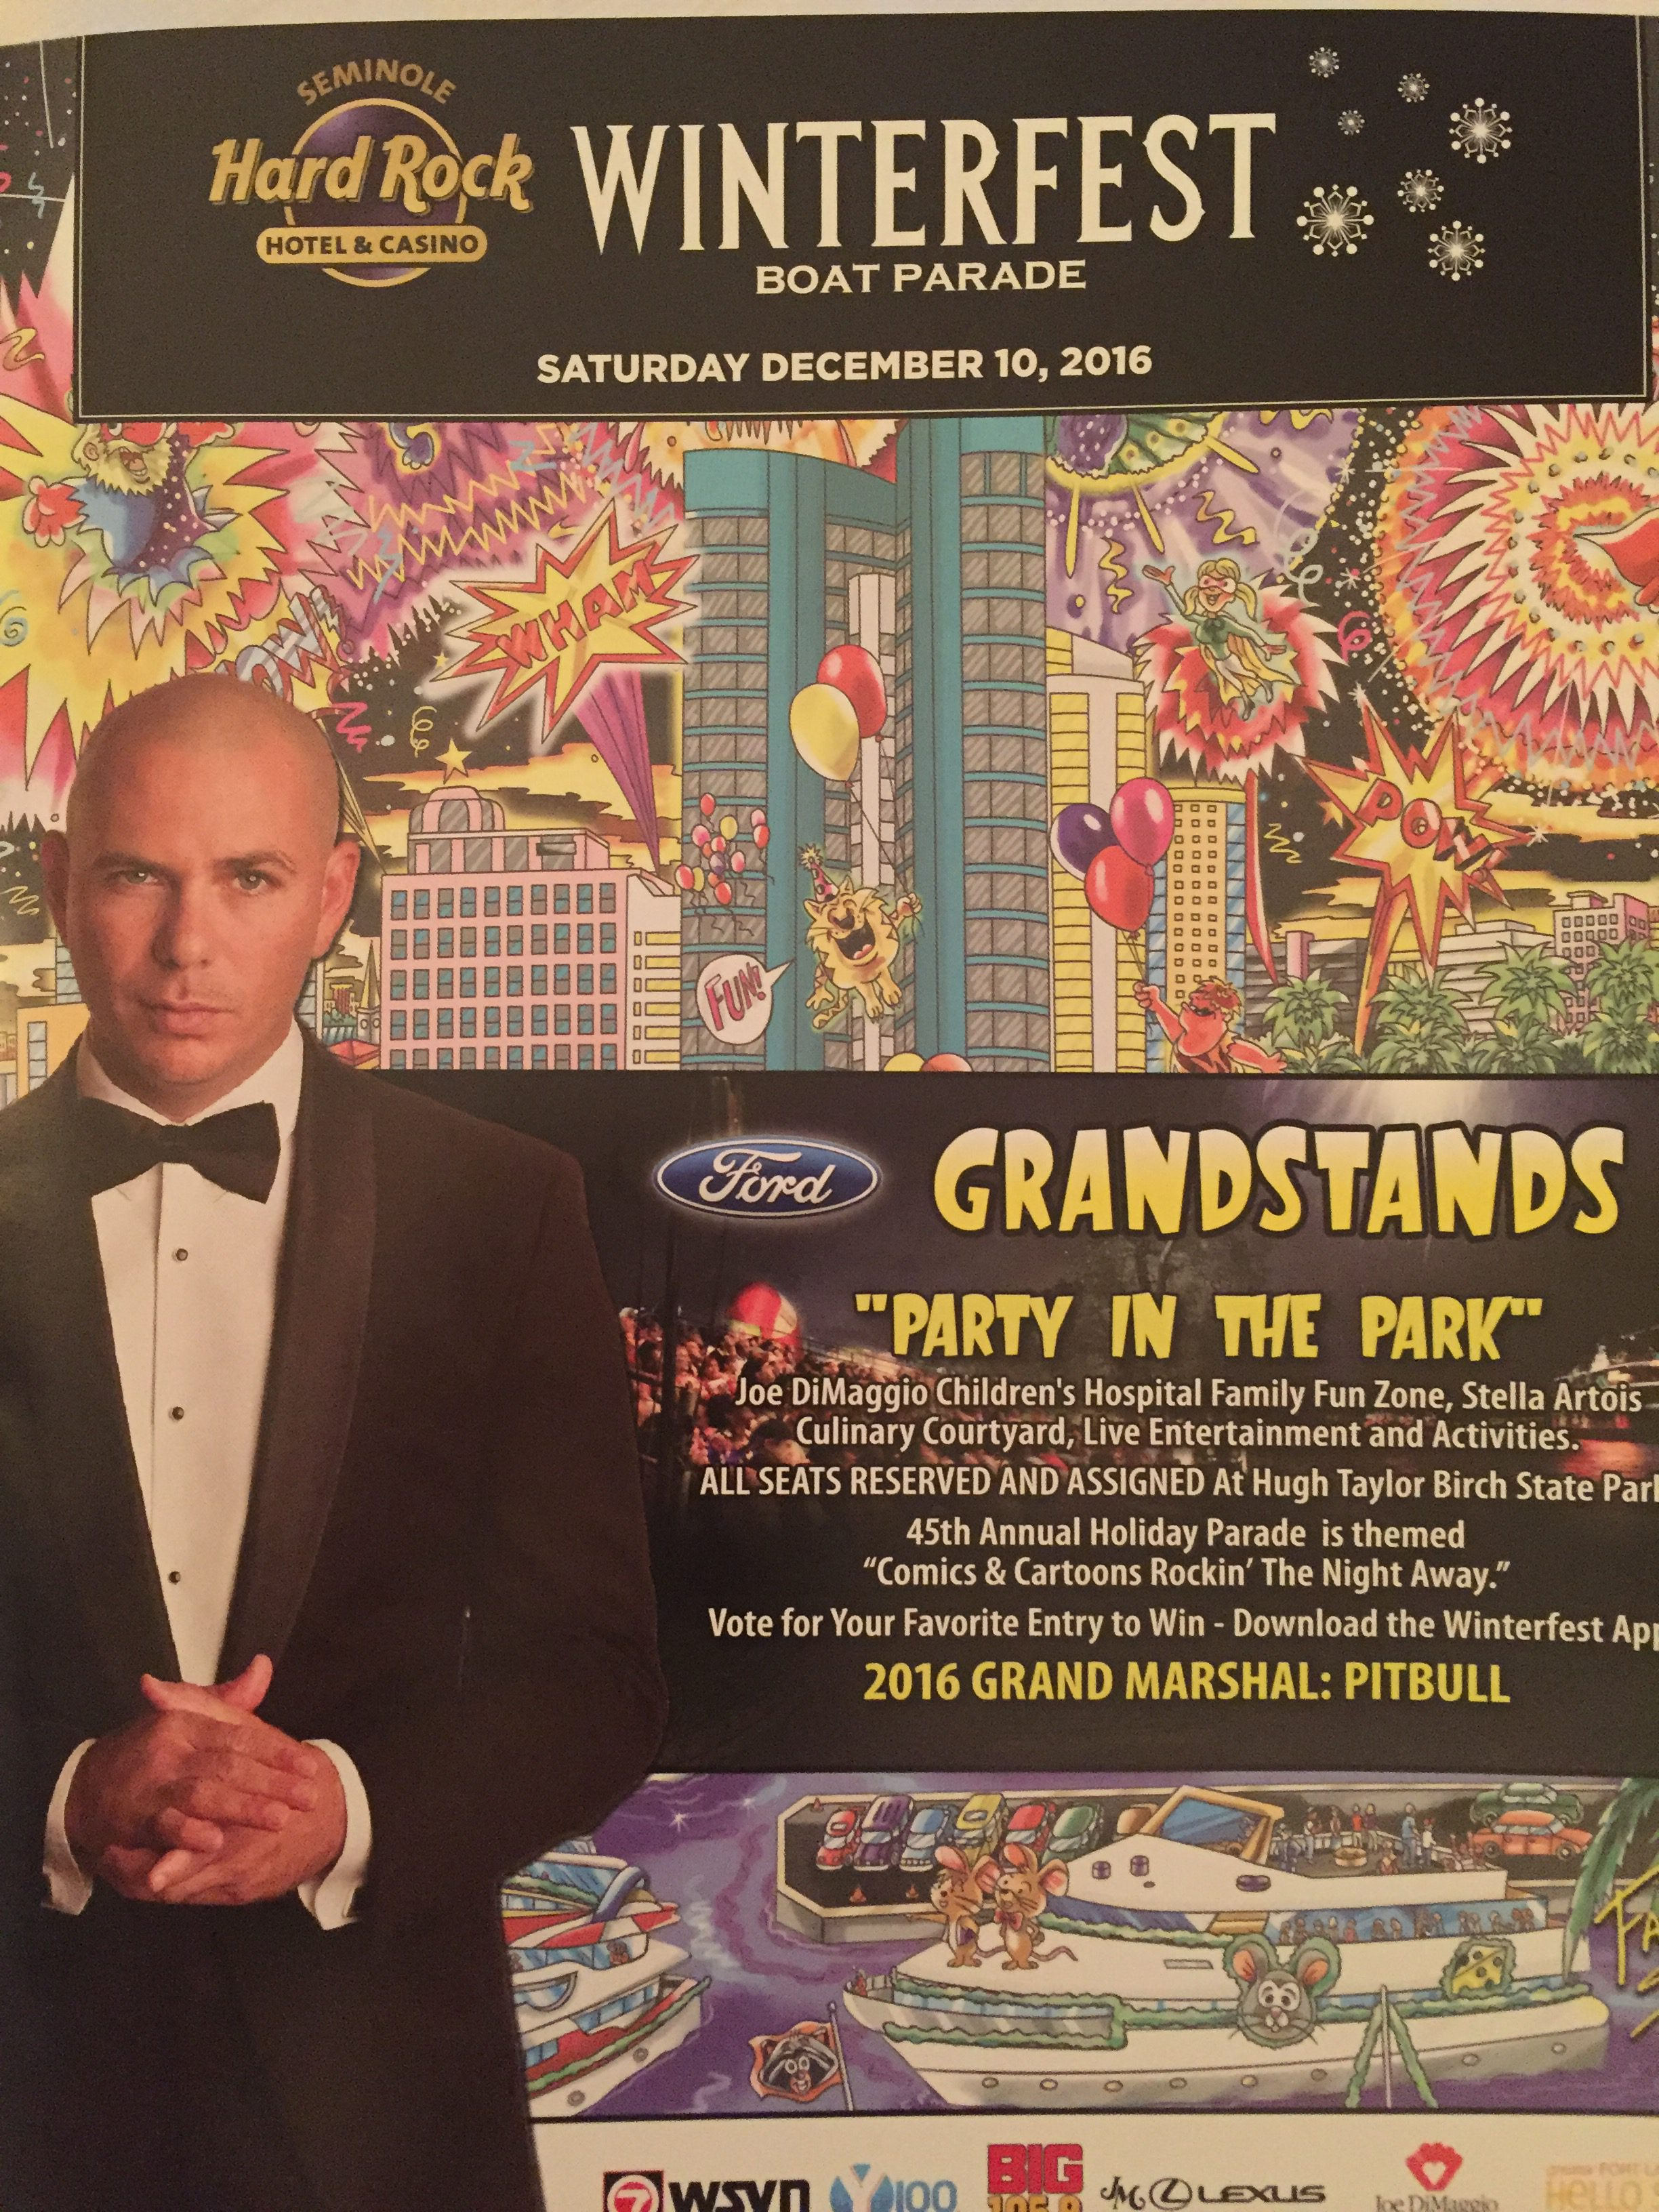 Grand Marshall Pitbull will be at Ft. Lauderdale's Winterfest Boat Parade 2016